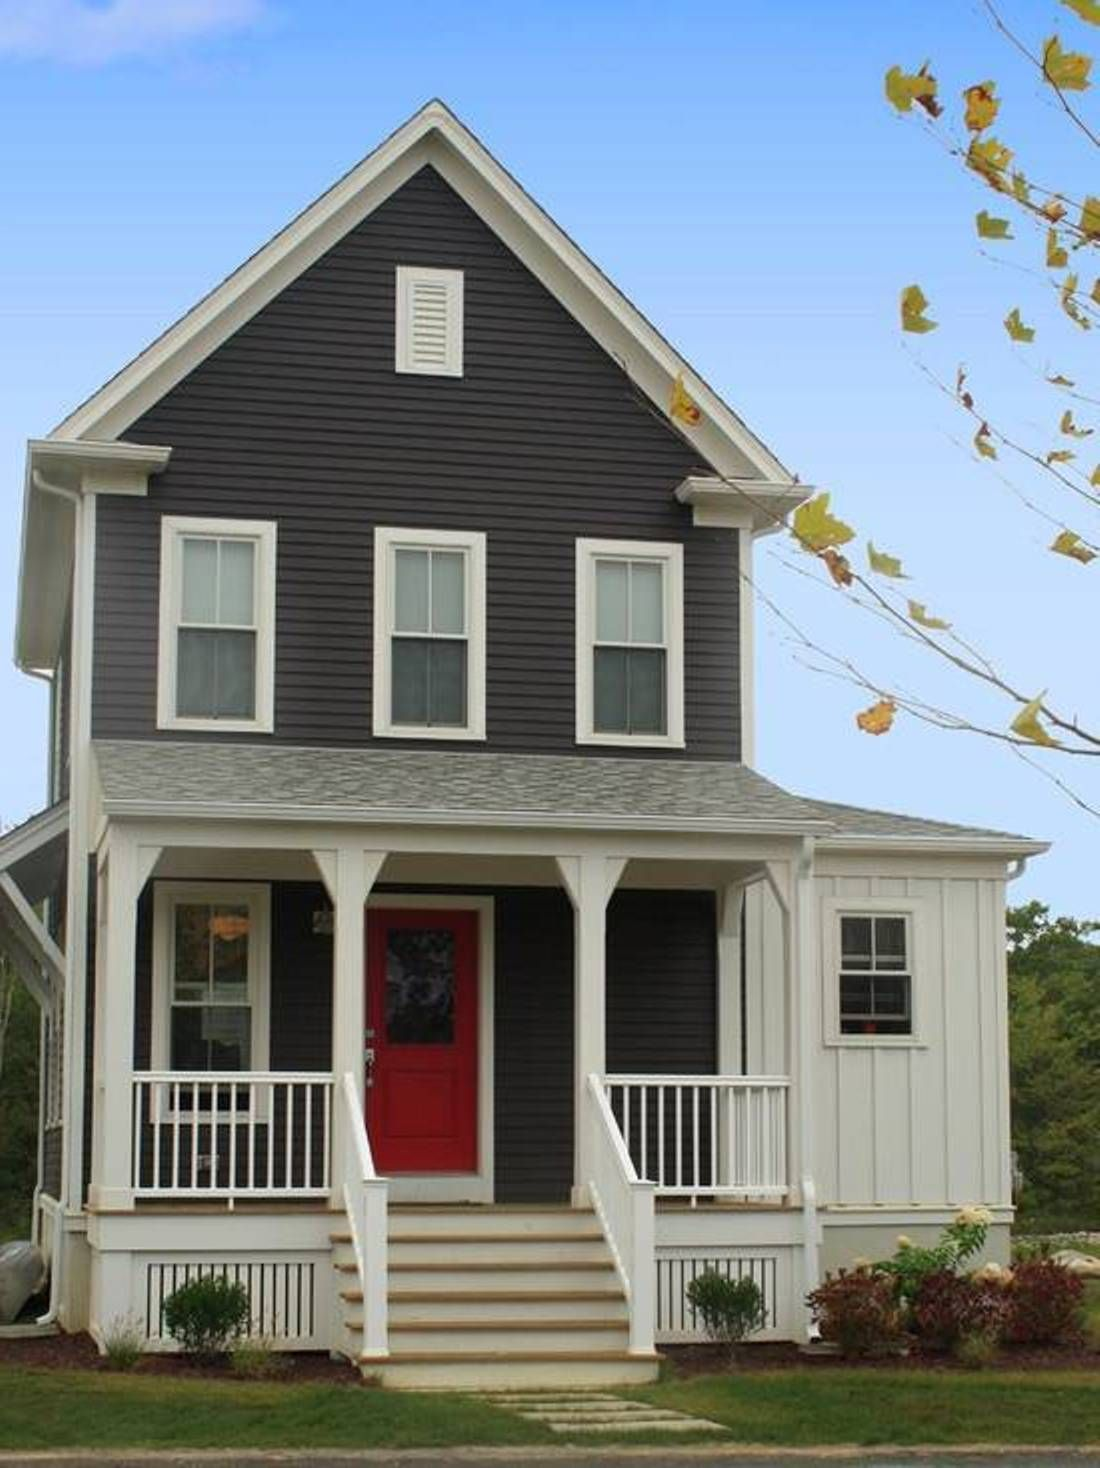 Superb White Wood Paint Exterior Part - 2: Delightful Gray House Exterior Paint Idea With White Window Frames Red Door  And White Balustrade Beautiful House Exterior Paint Ideas